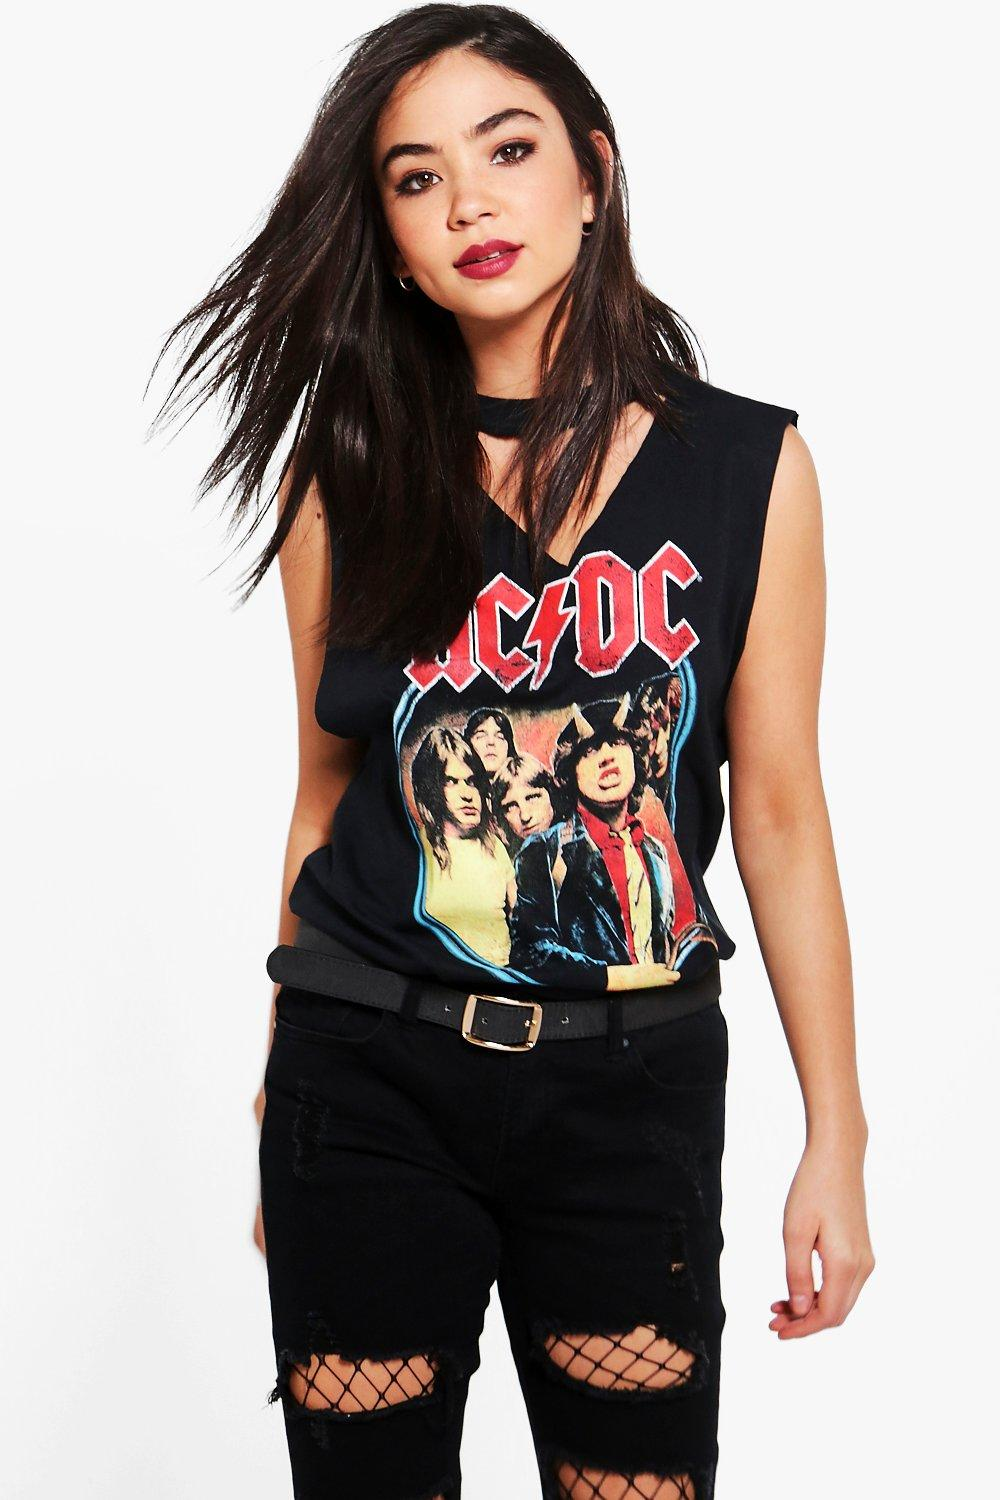 ACDC Choker Neck Band Tee  black